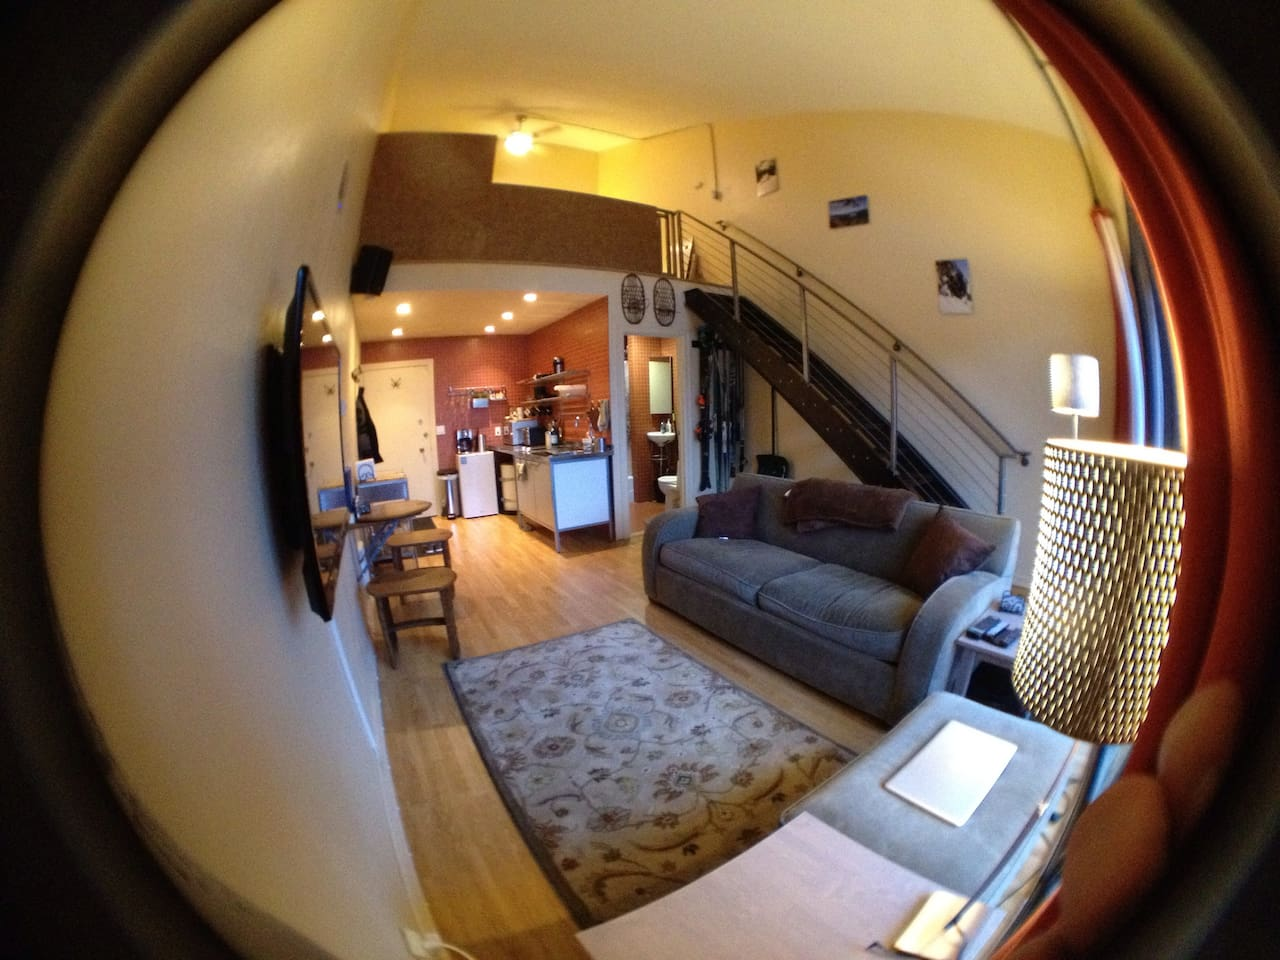 View of entire apartment - living area in foreground, kitchen/bathroom in background.